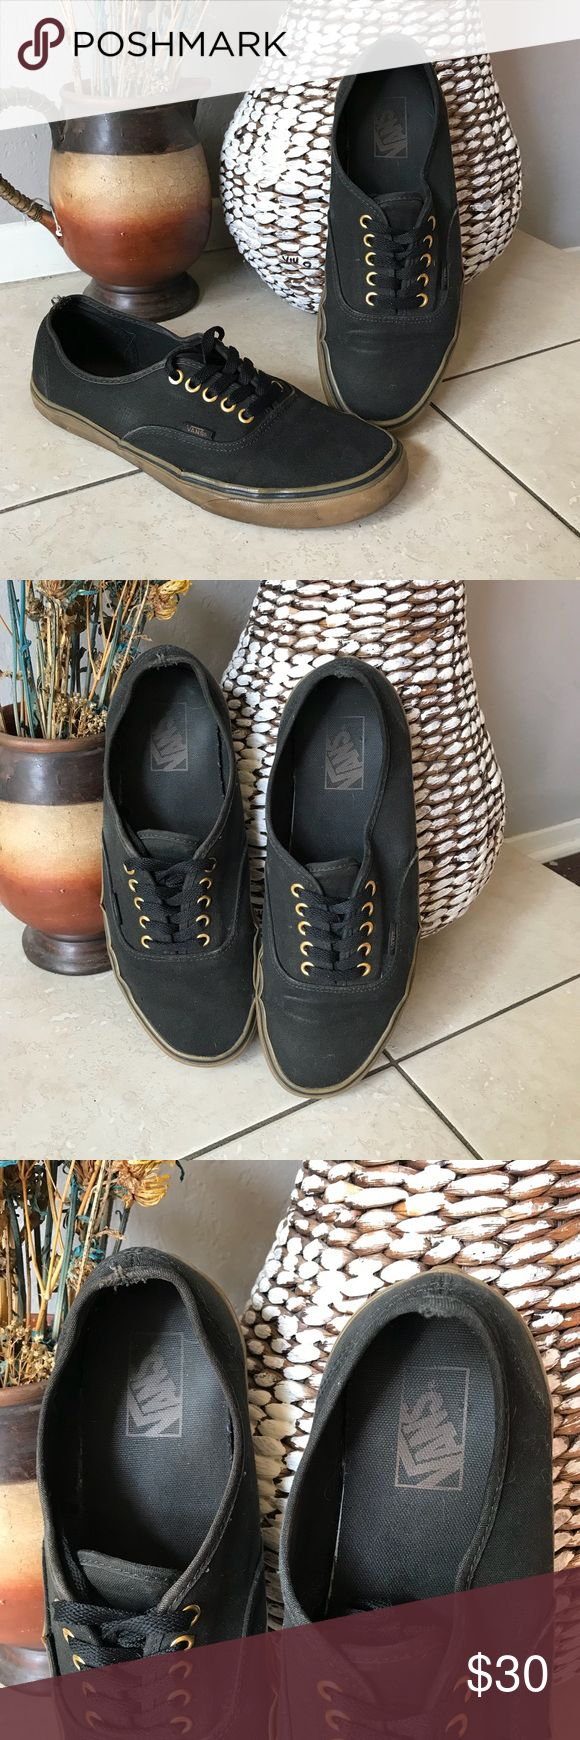 Vans Authentic Gum Sole Sneaker Black and brown Vans gum sole authentic sneakers. In good used condition with signs of wear as shown in photos!   Men's size 10  Same day shipping! Vans Shoes Sneakers